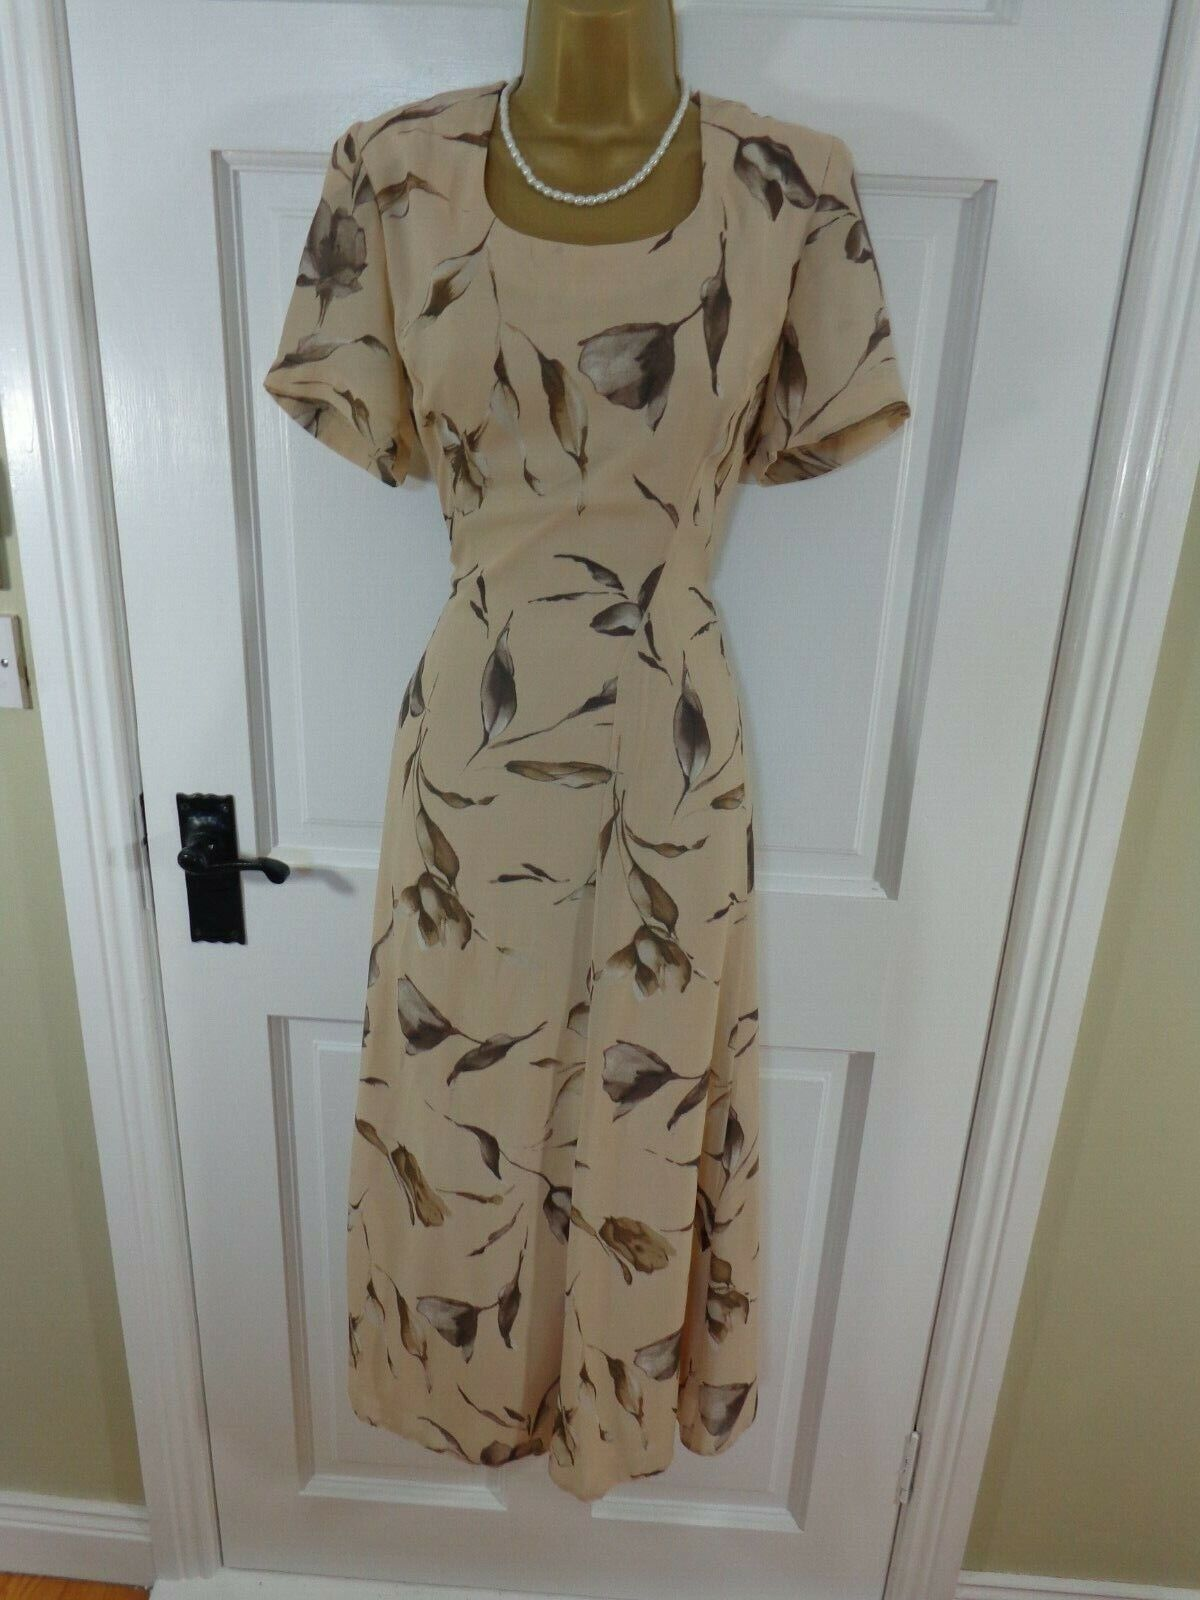 Jacques green Cream   Beige Floral Lined Dress, Excellent Condition